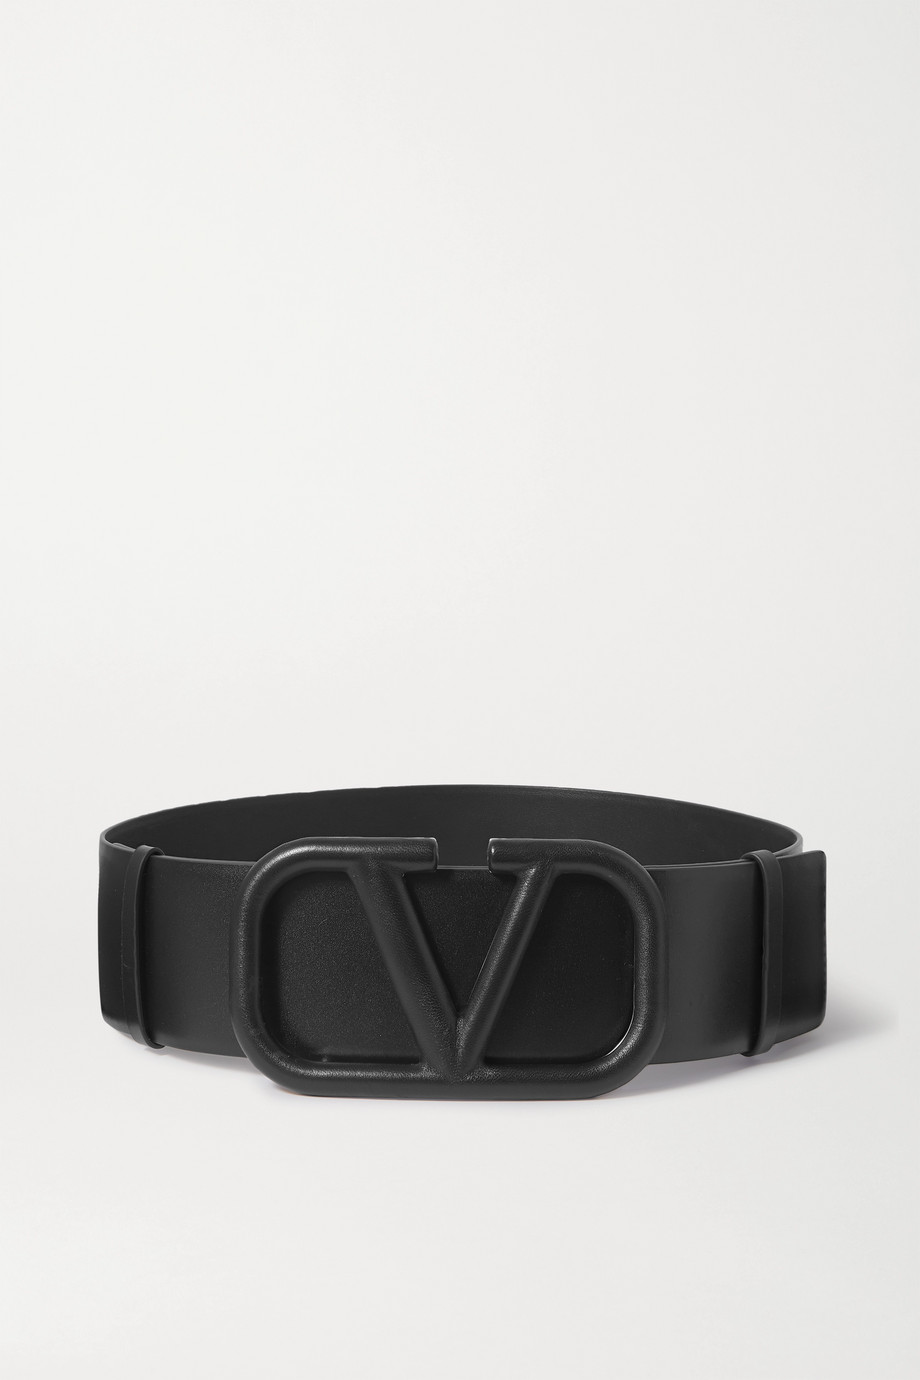 Valentino Valentino Garavani leather waist belt